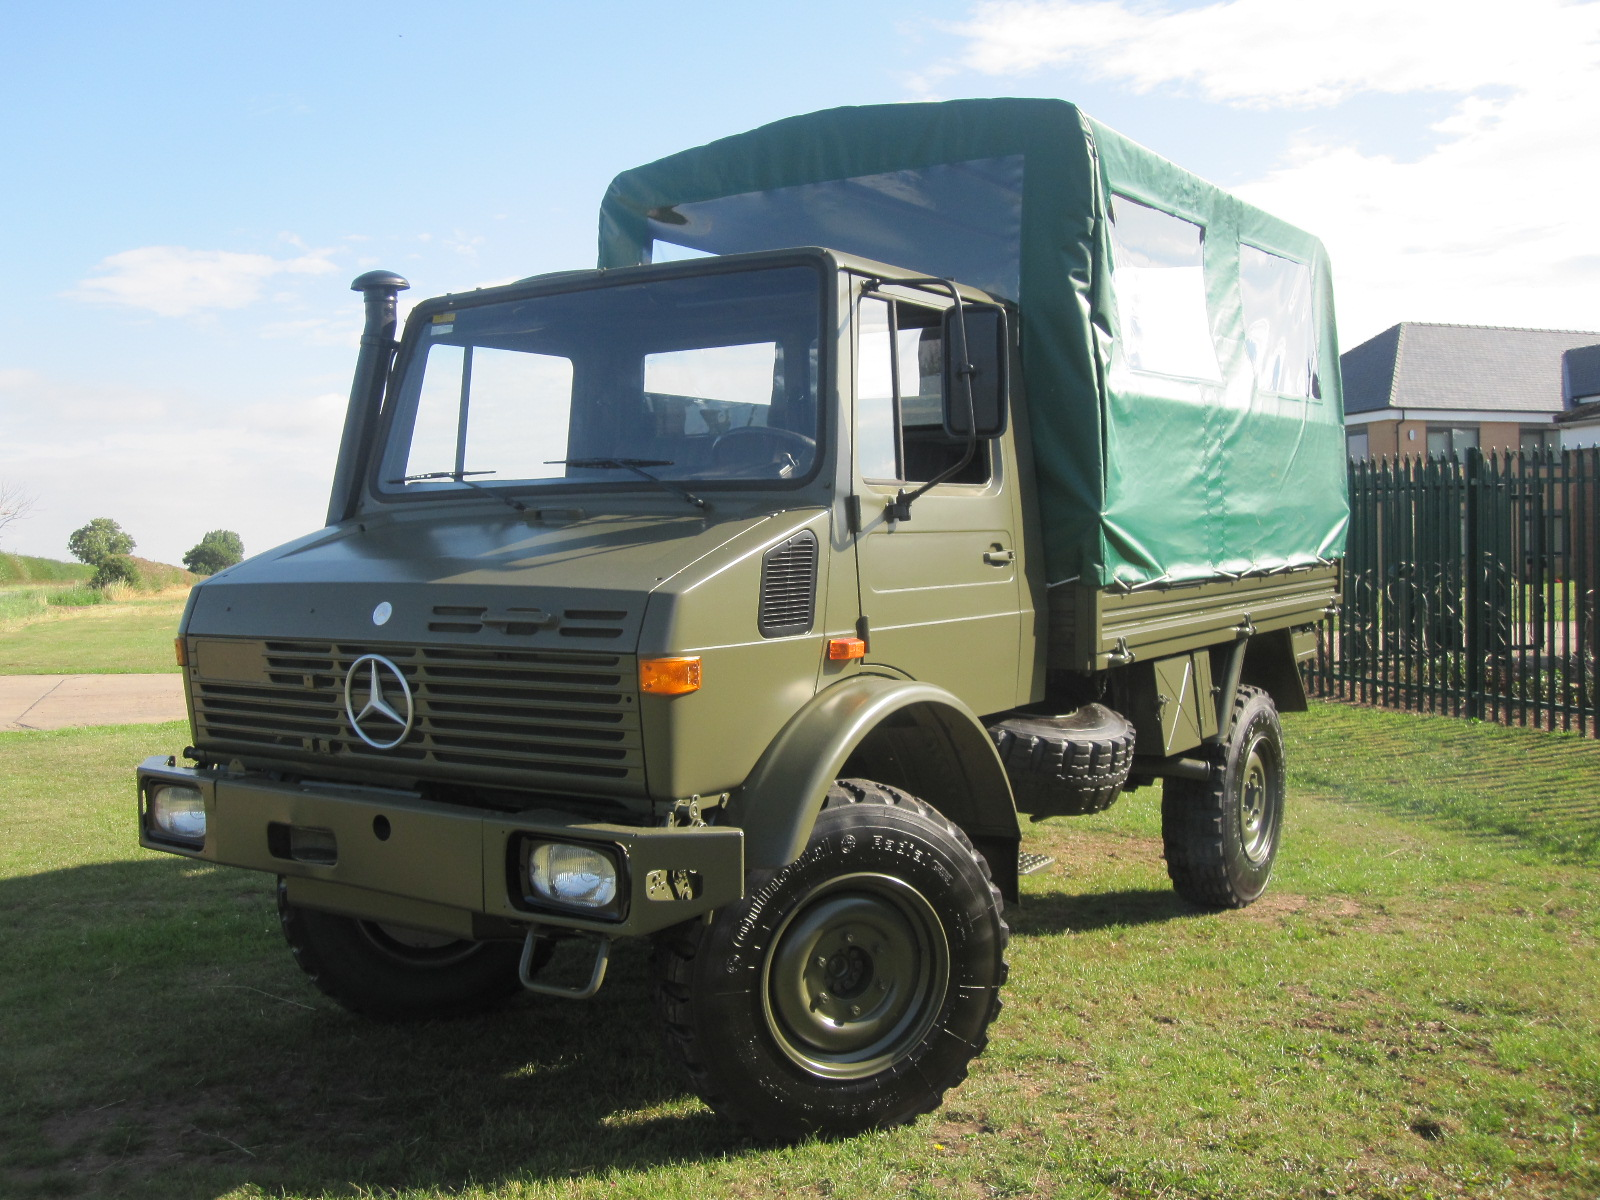 Mercedes Unimog U1300L 4x4 Shoot Vehicle | Military Land Rovers 90, 110,130, Range Rovers, Mercedes for Sale